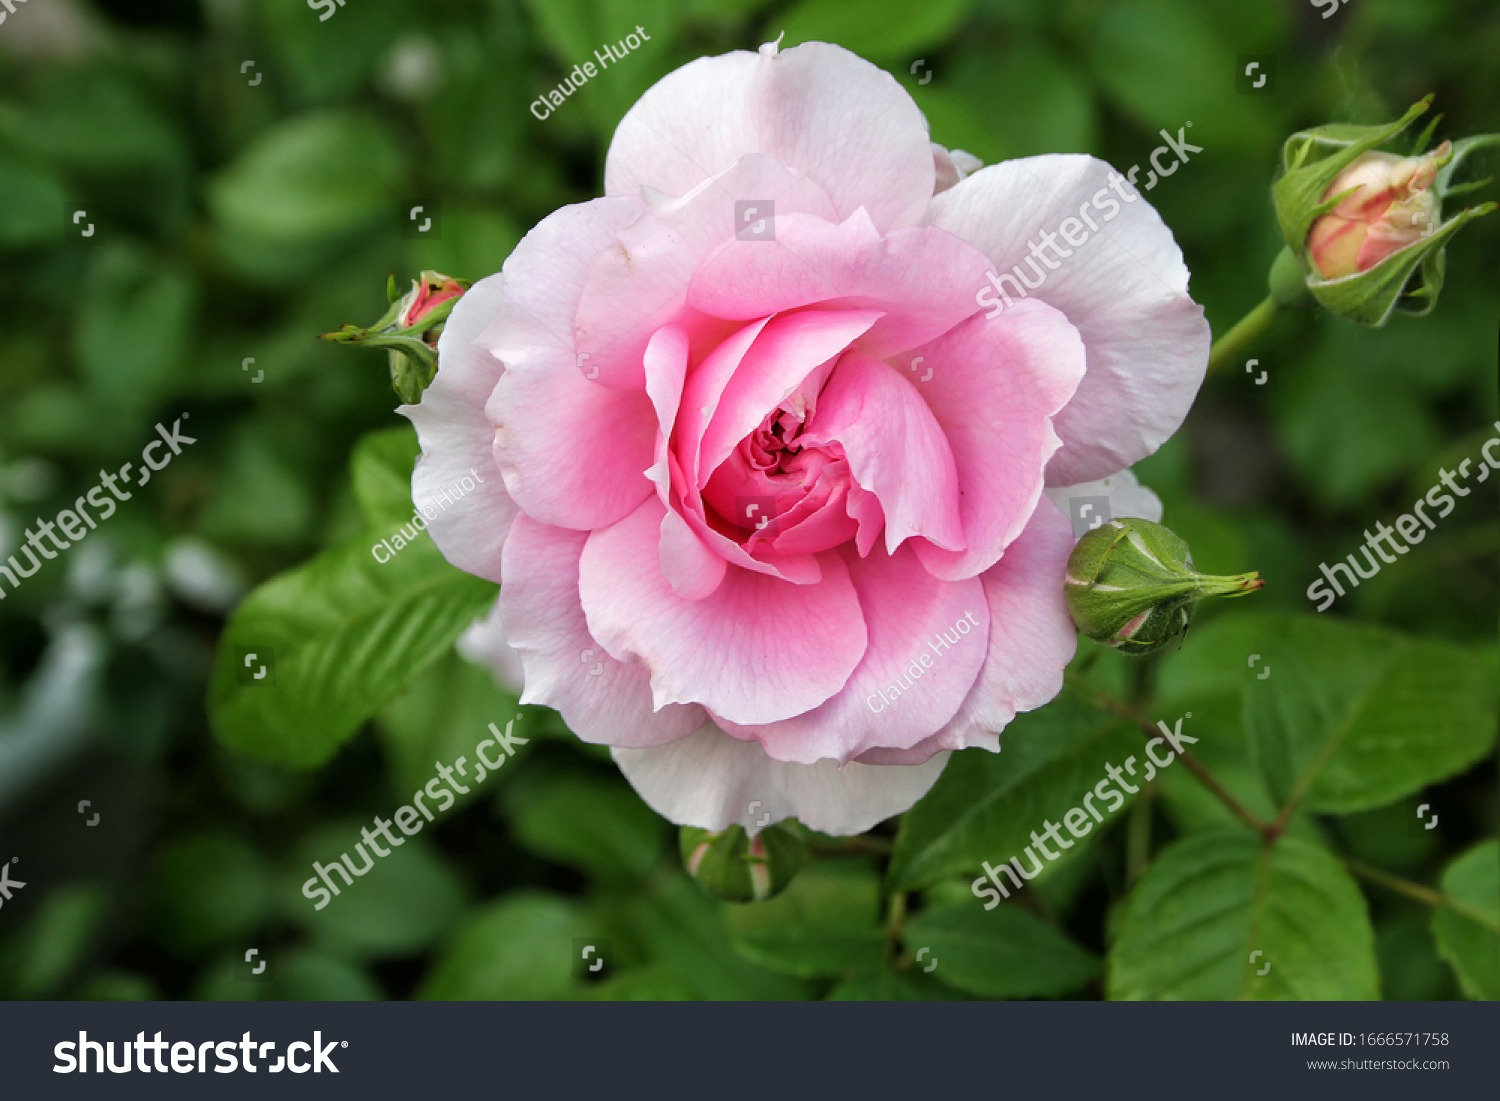 Beautiful Floribunda pink rose and buds with a natural green foliage in the background in a home garden.